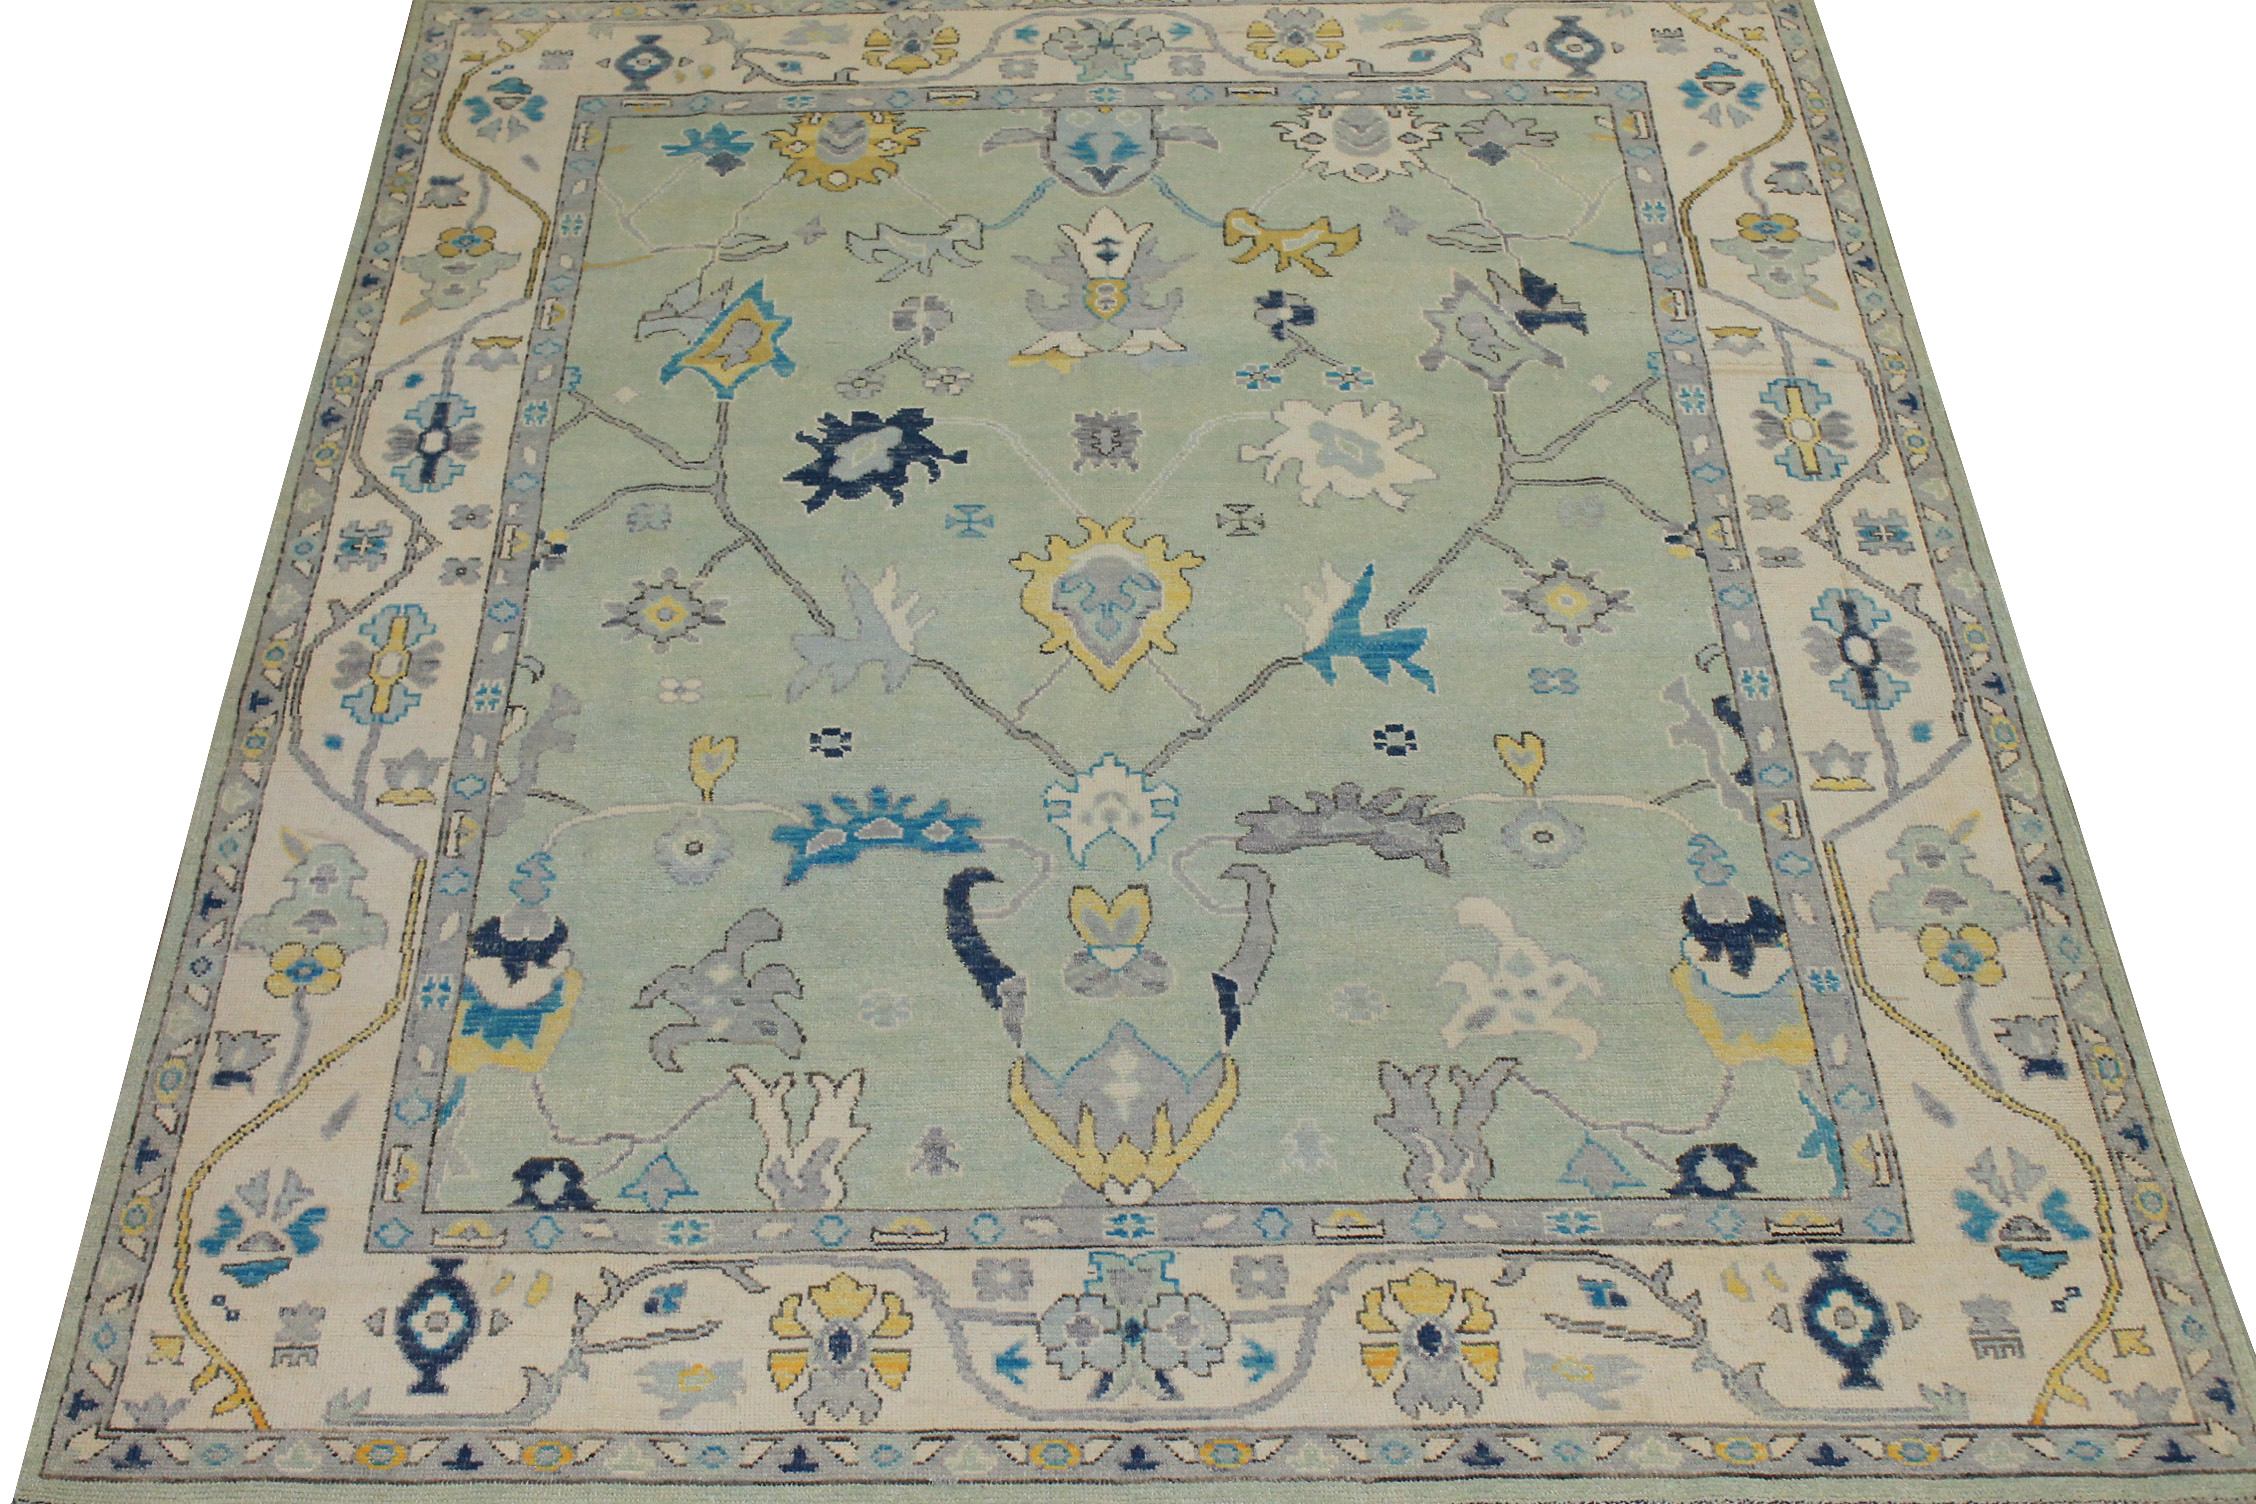 8x10 Oushak Hand Knotted Wool Area Rug - MR024436